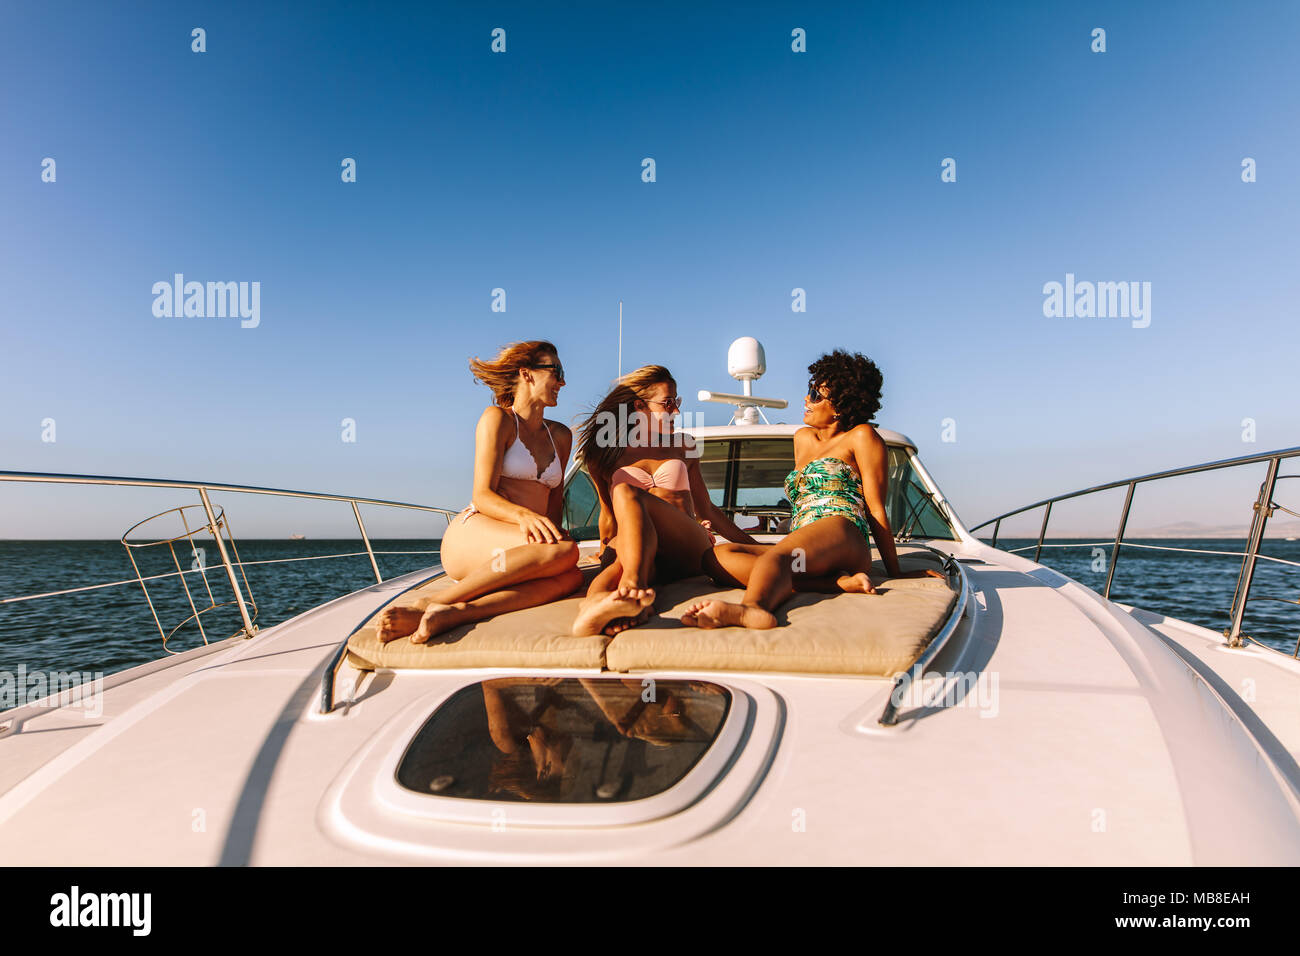 Three girls sitting on the deck of a private yacht in the sea. Smiling female friends in swimsuits relaxing on yacht deck and chatting. - Stock Image